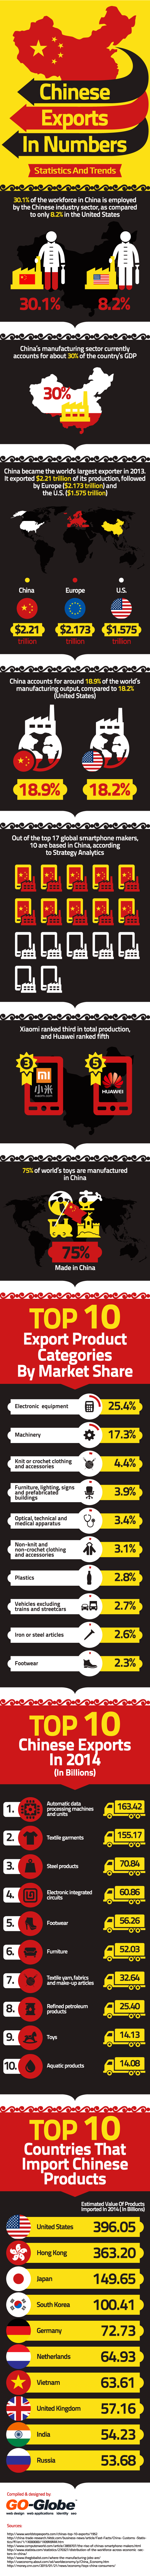 chinese exports in numbers u2013 statistics and trends